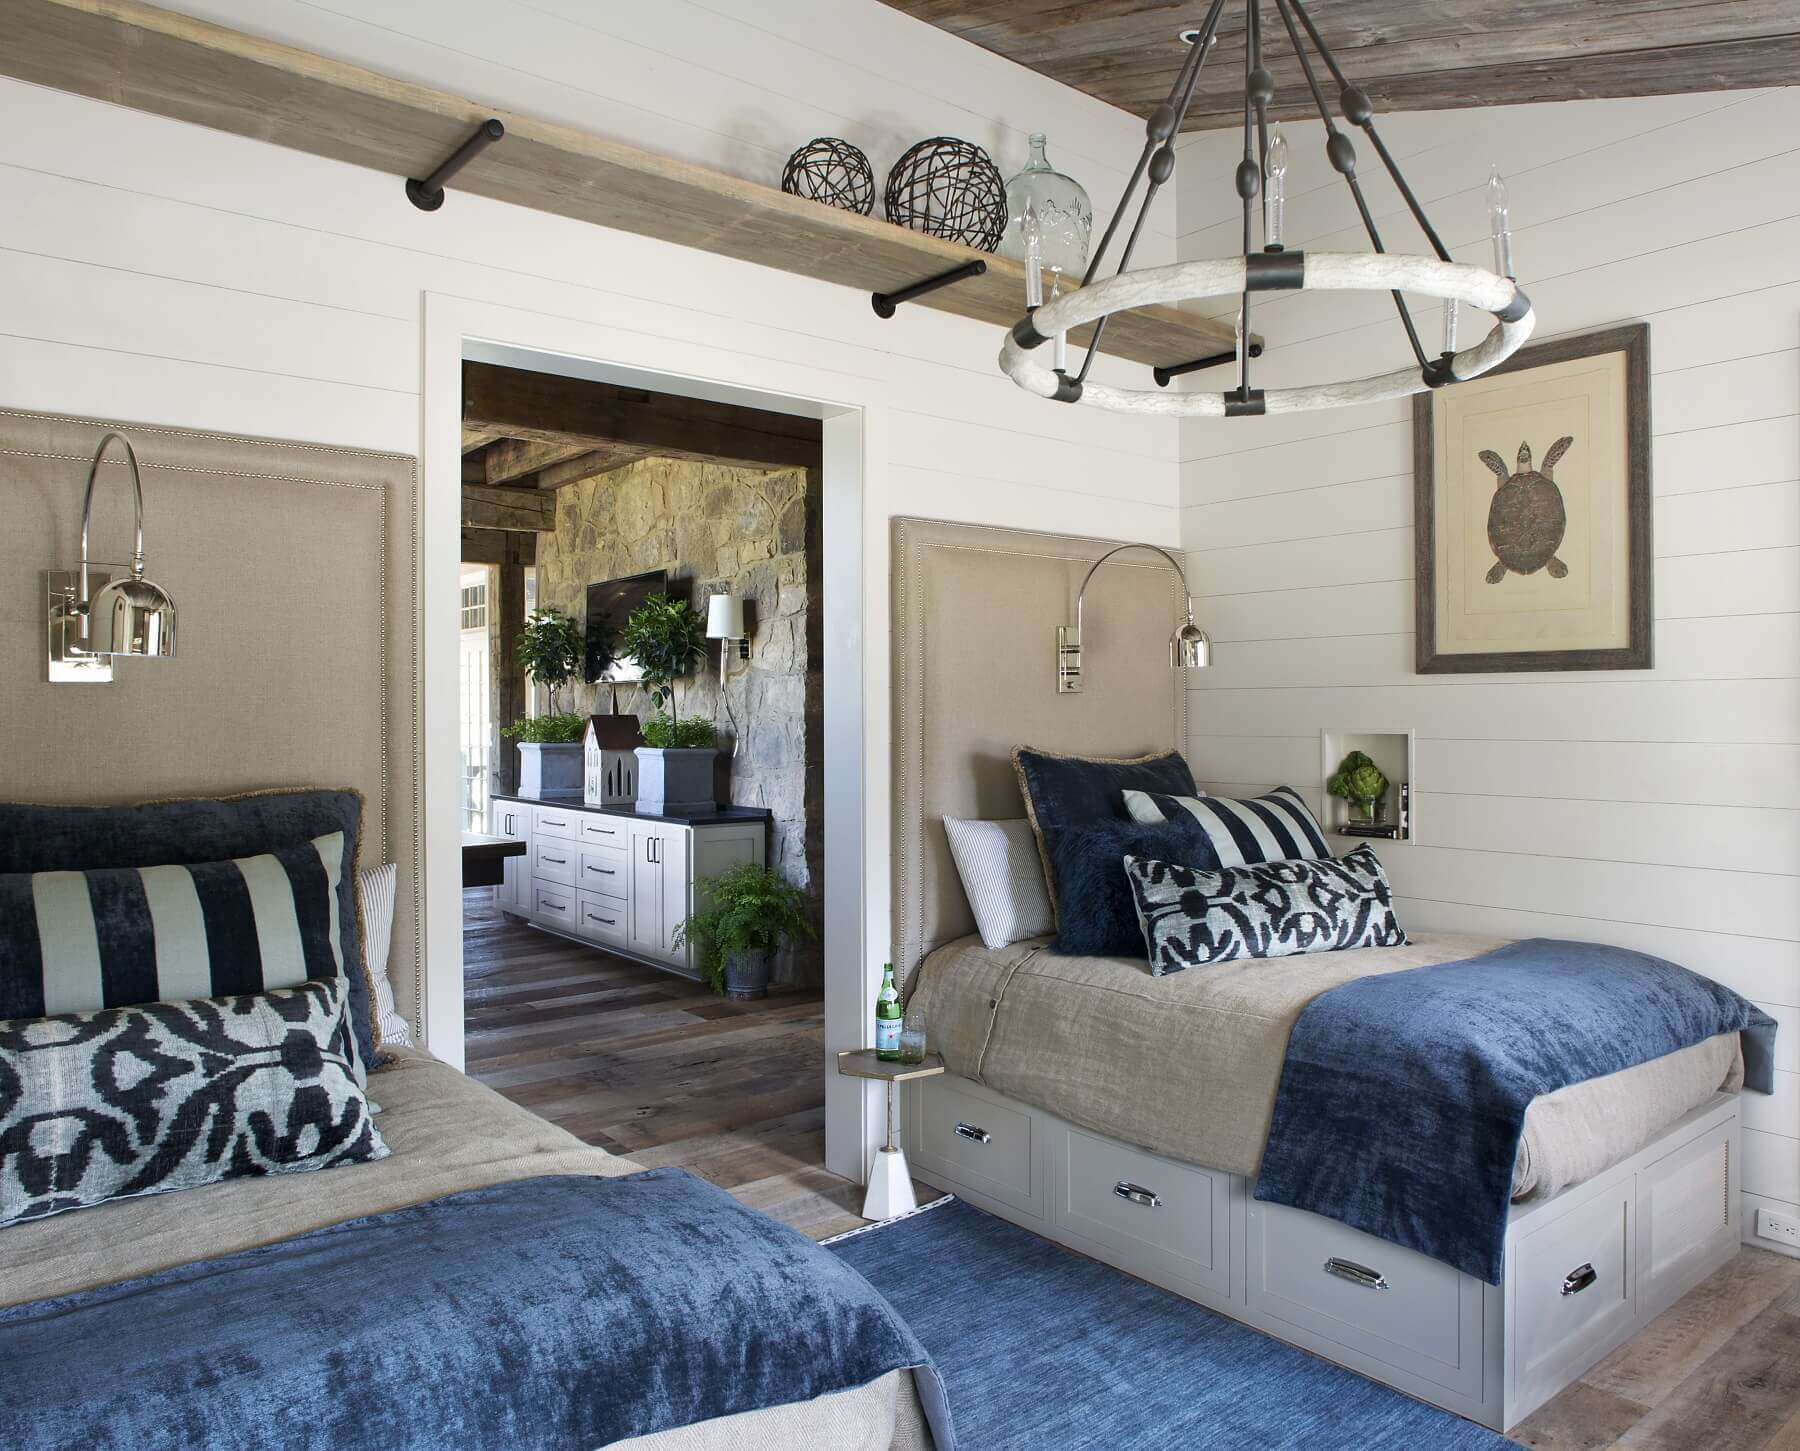 A bedroom features a pair of built-in beds with storage underneath, maximizing space and functionality for guests. A wagon wheel chandelier gives a nod to the home's rustic site.